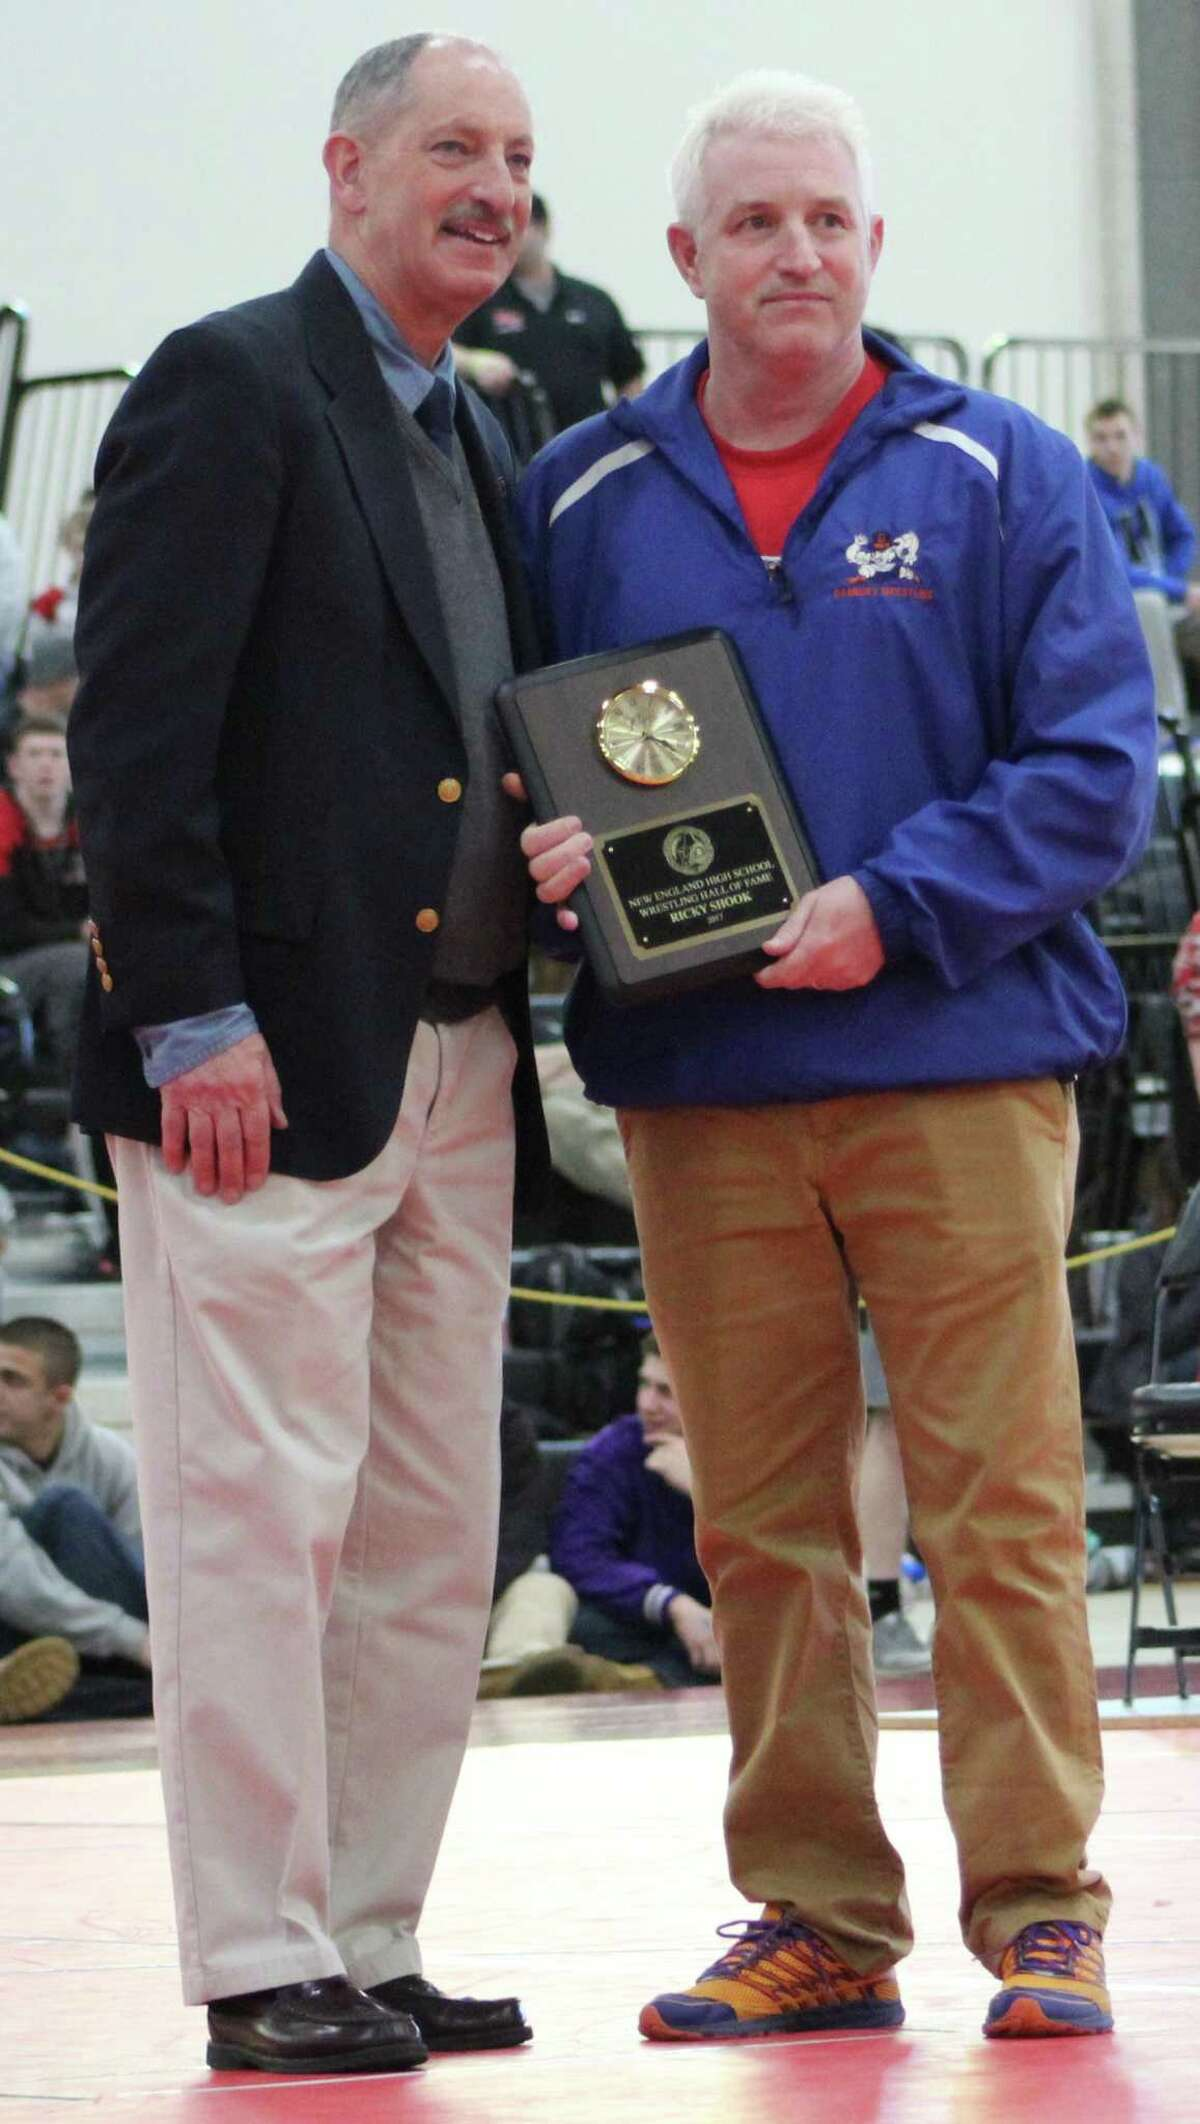 Danbury wrestling coach Ricky Shook, right, is inducted into the New England Wrestling Hall of Fame before the championship matches at the New England championships in March 2017.